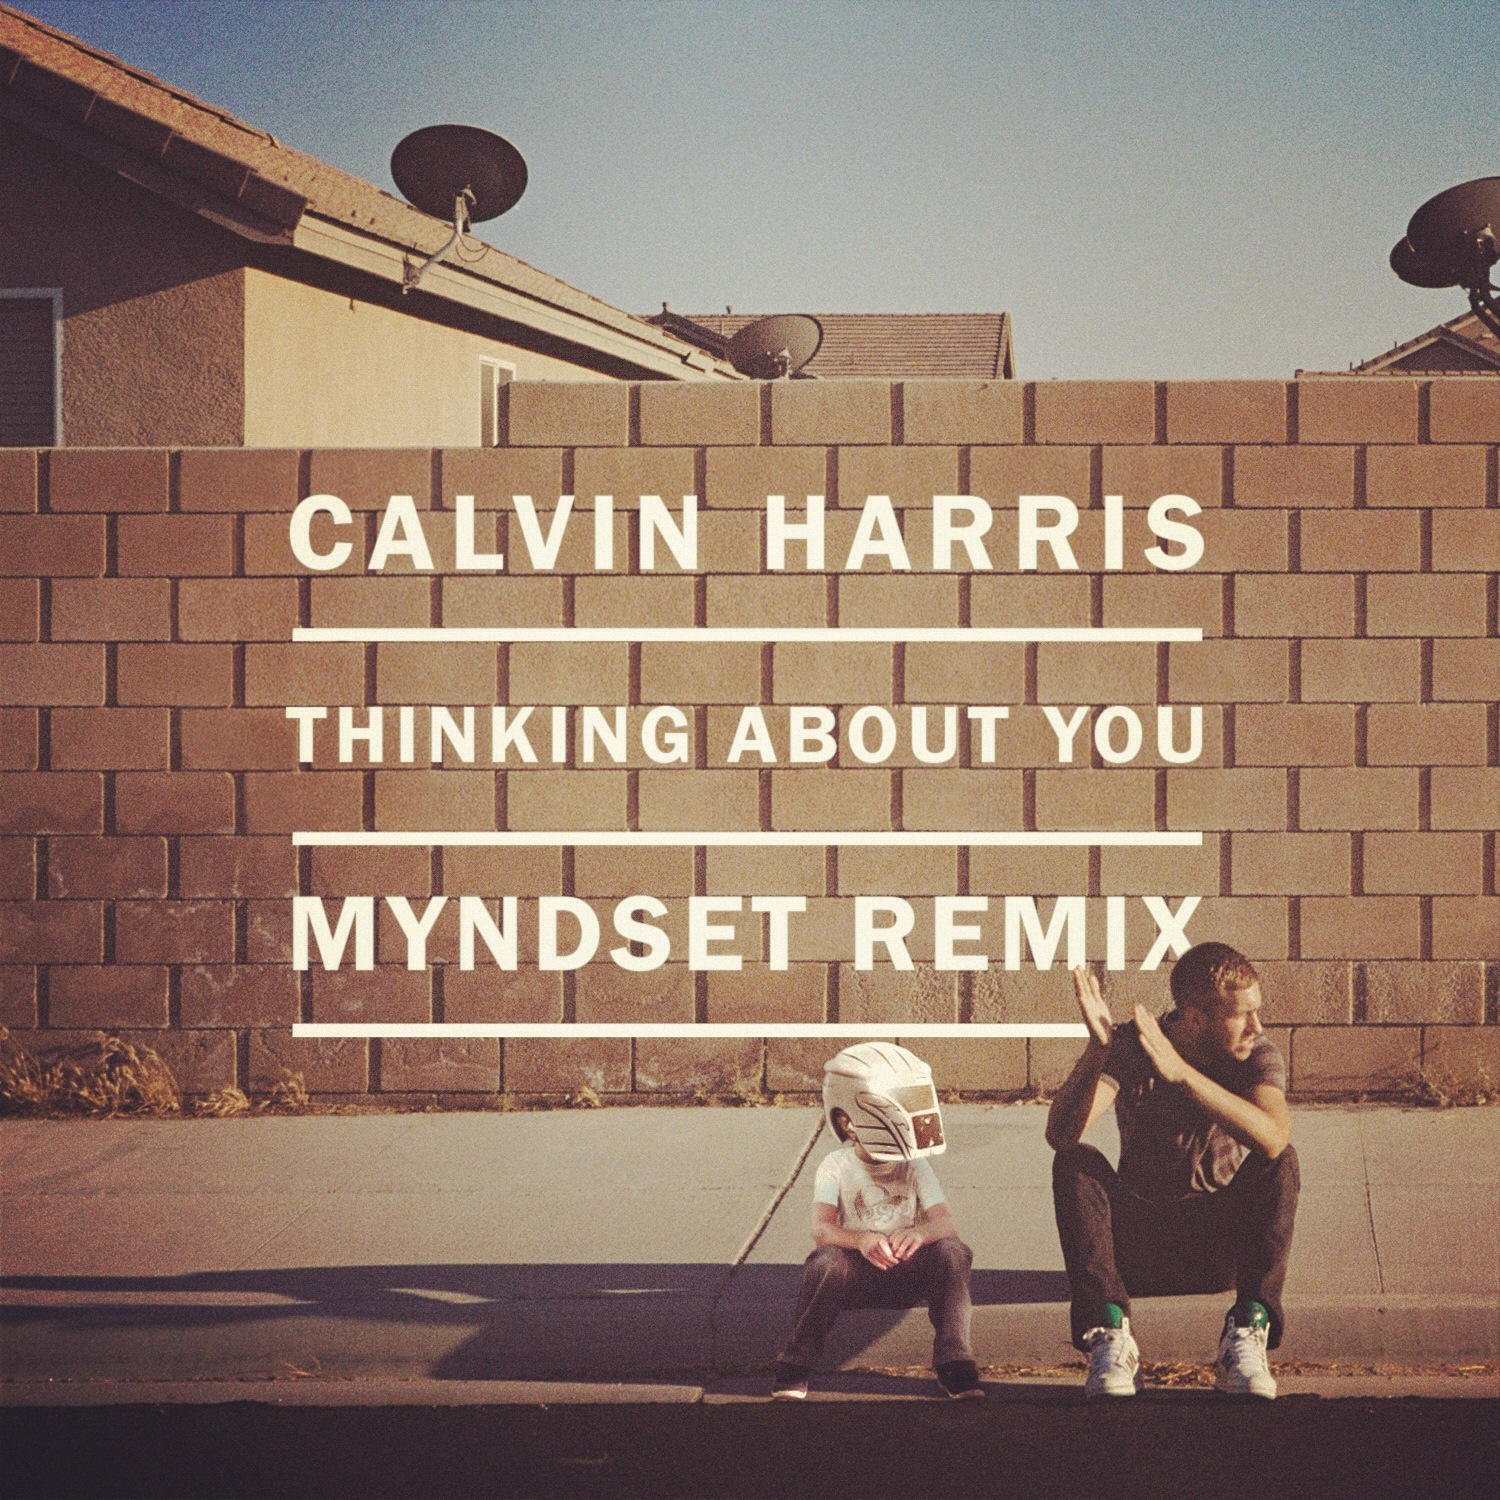 Calvin Harris Thinking About You Mp3 Free Download by ...